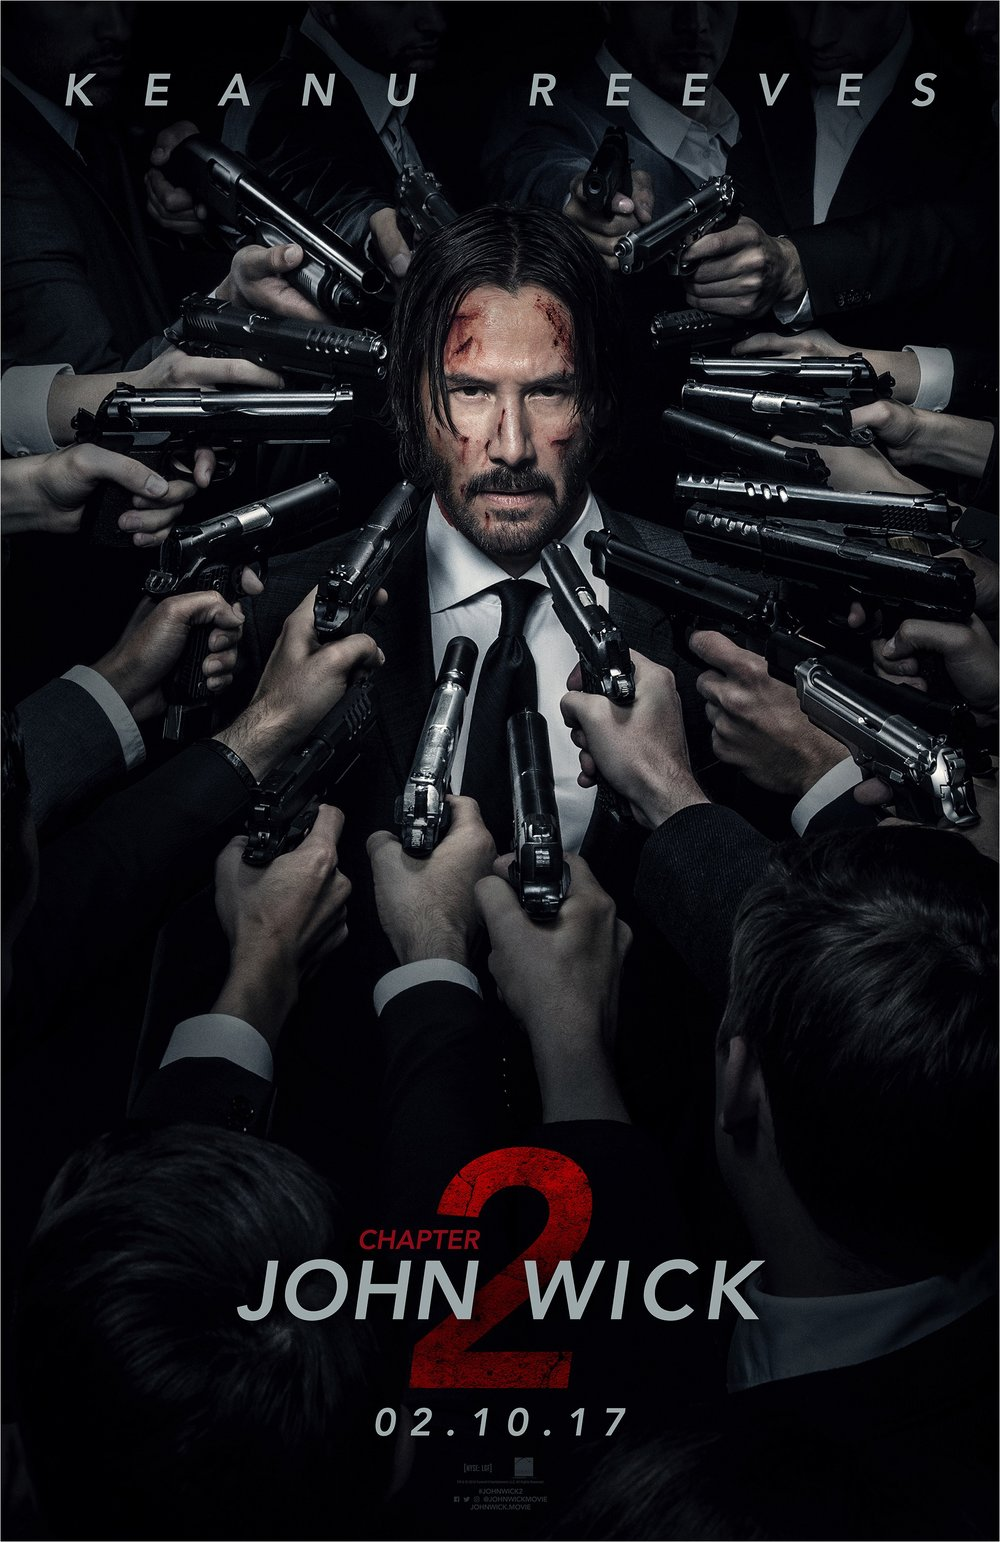 john wick, John wick chapter 2, keanu reeves,